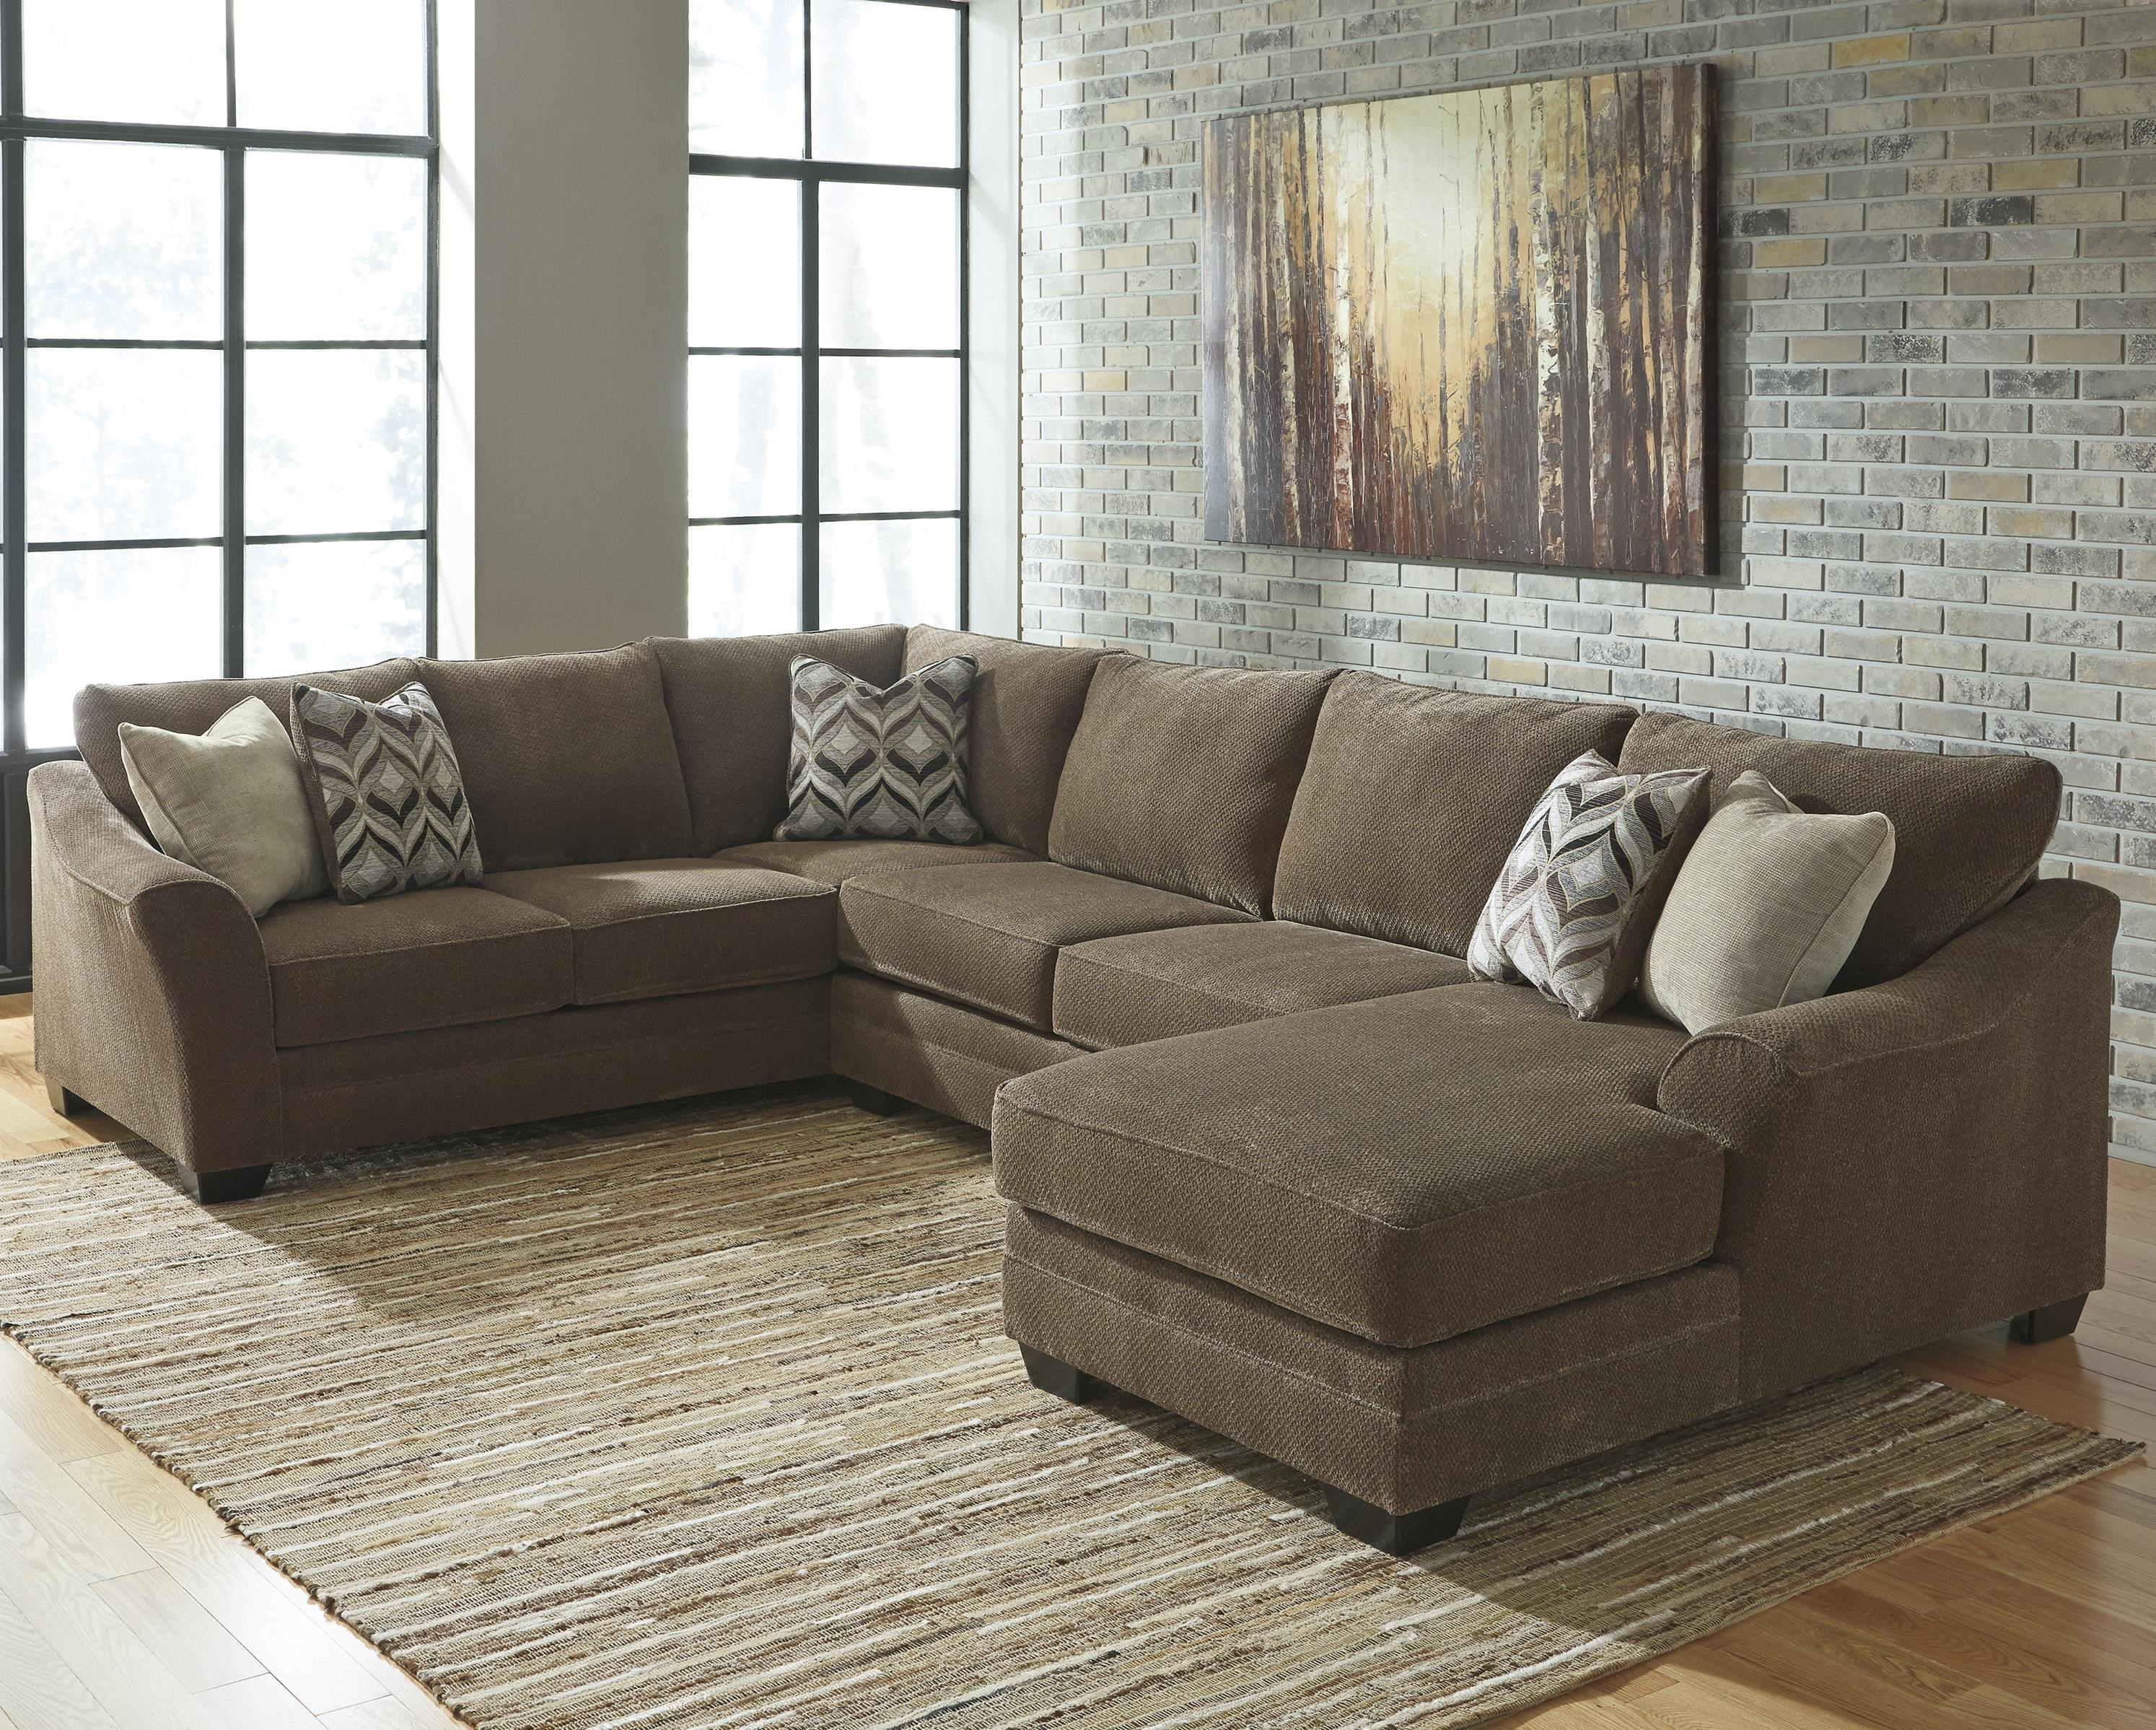 Benchcraft Justyna Contemporary 3-Piece Sectional with Right Chaise  sc 1 st  Wayside Furniture : 3 piece sectional sofa with chaise - Sectionals, Sofas & Couches